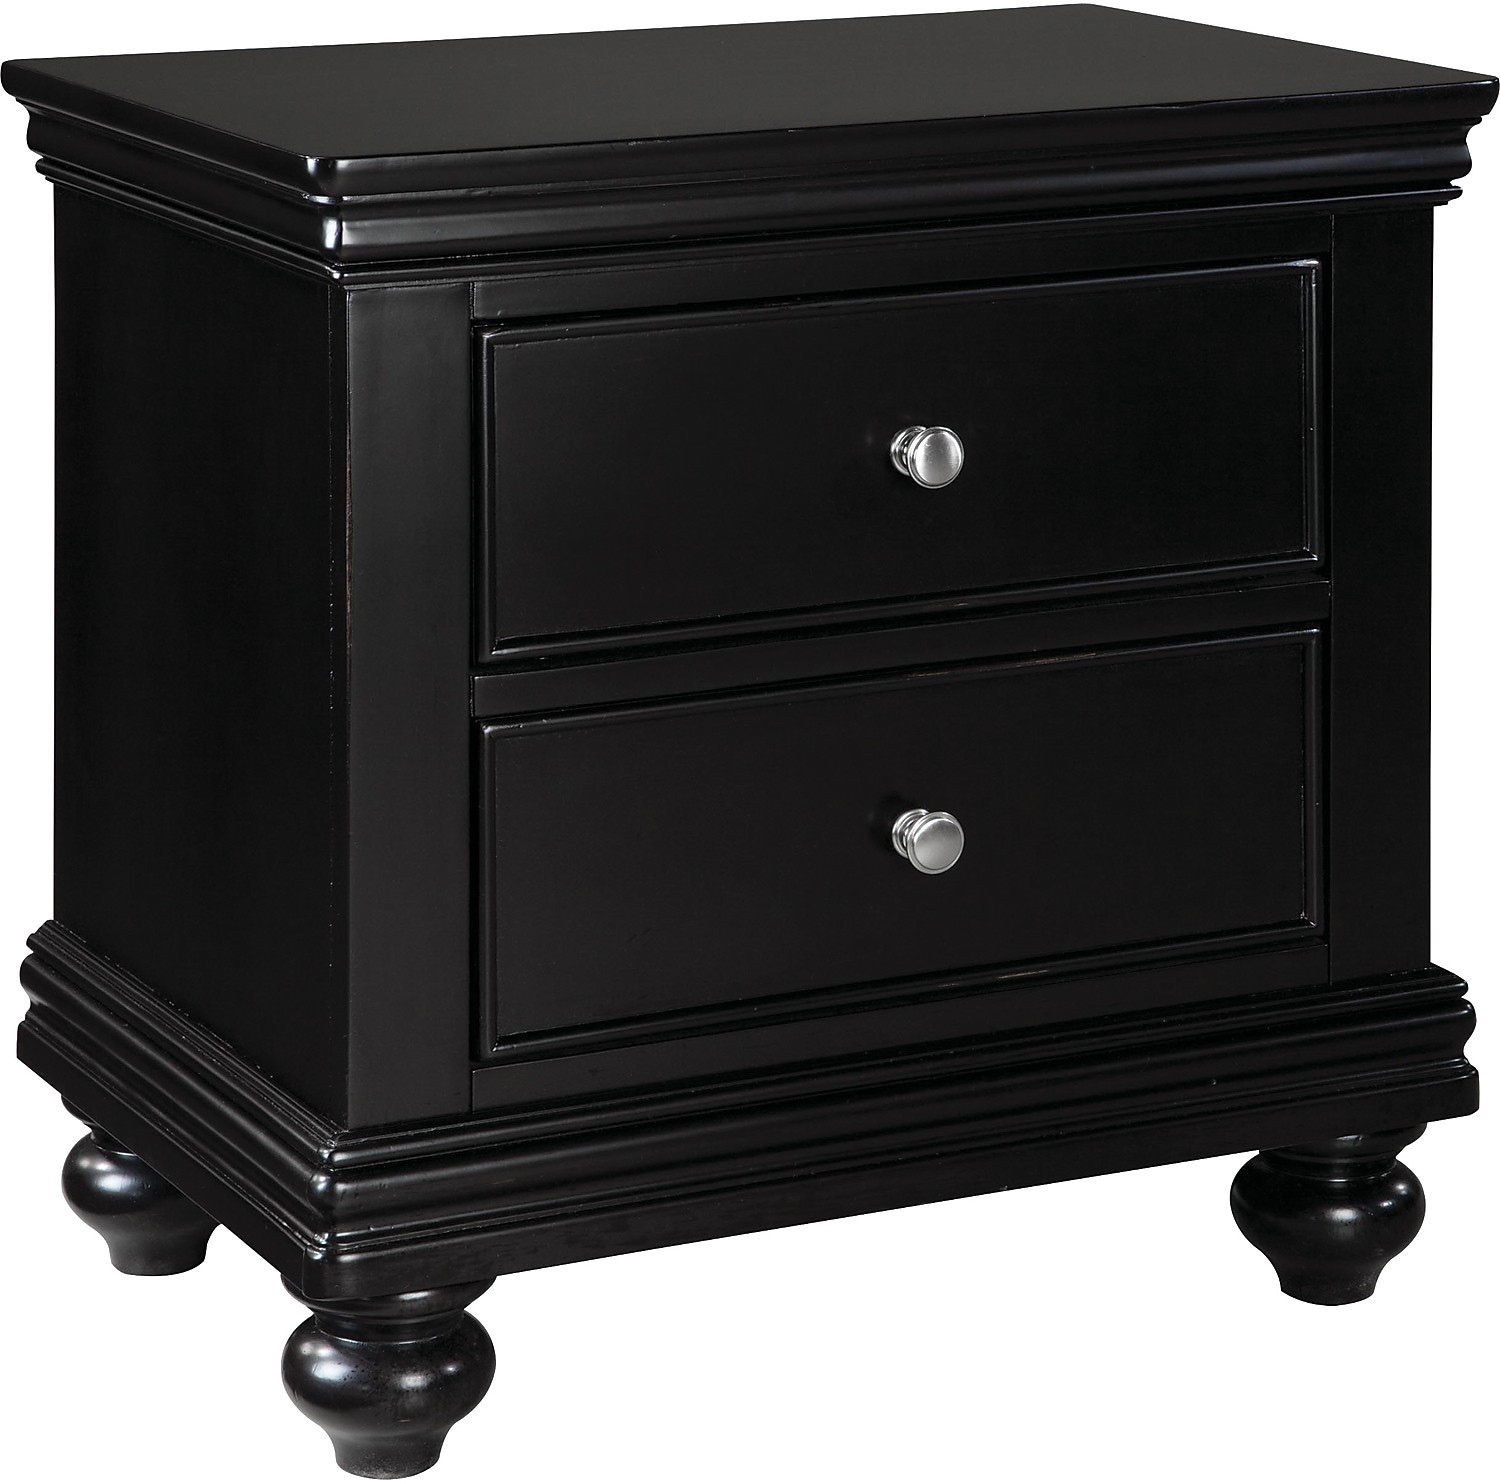 black dresser and nightstand set bridgeport nightstand black the brick 18344